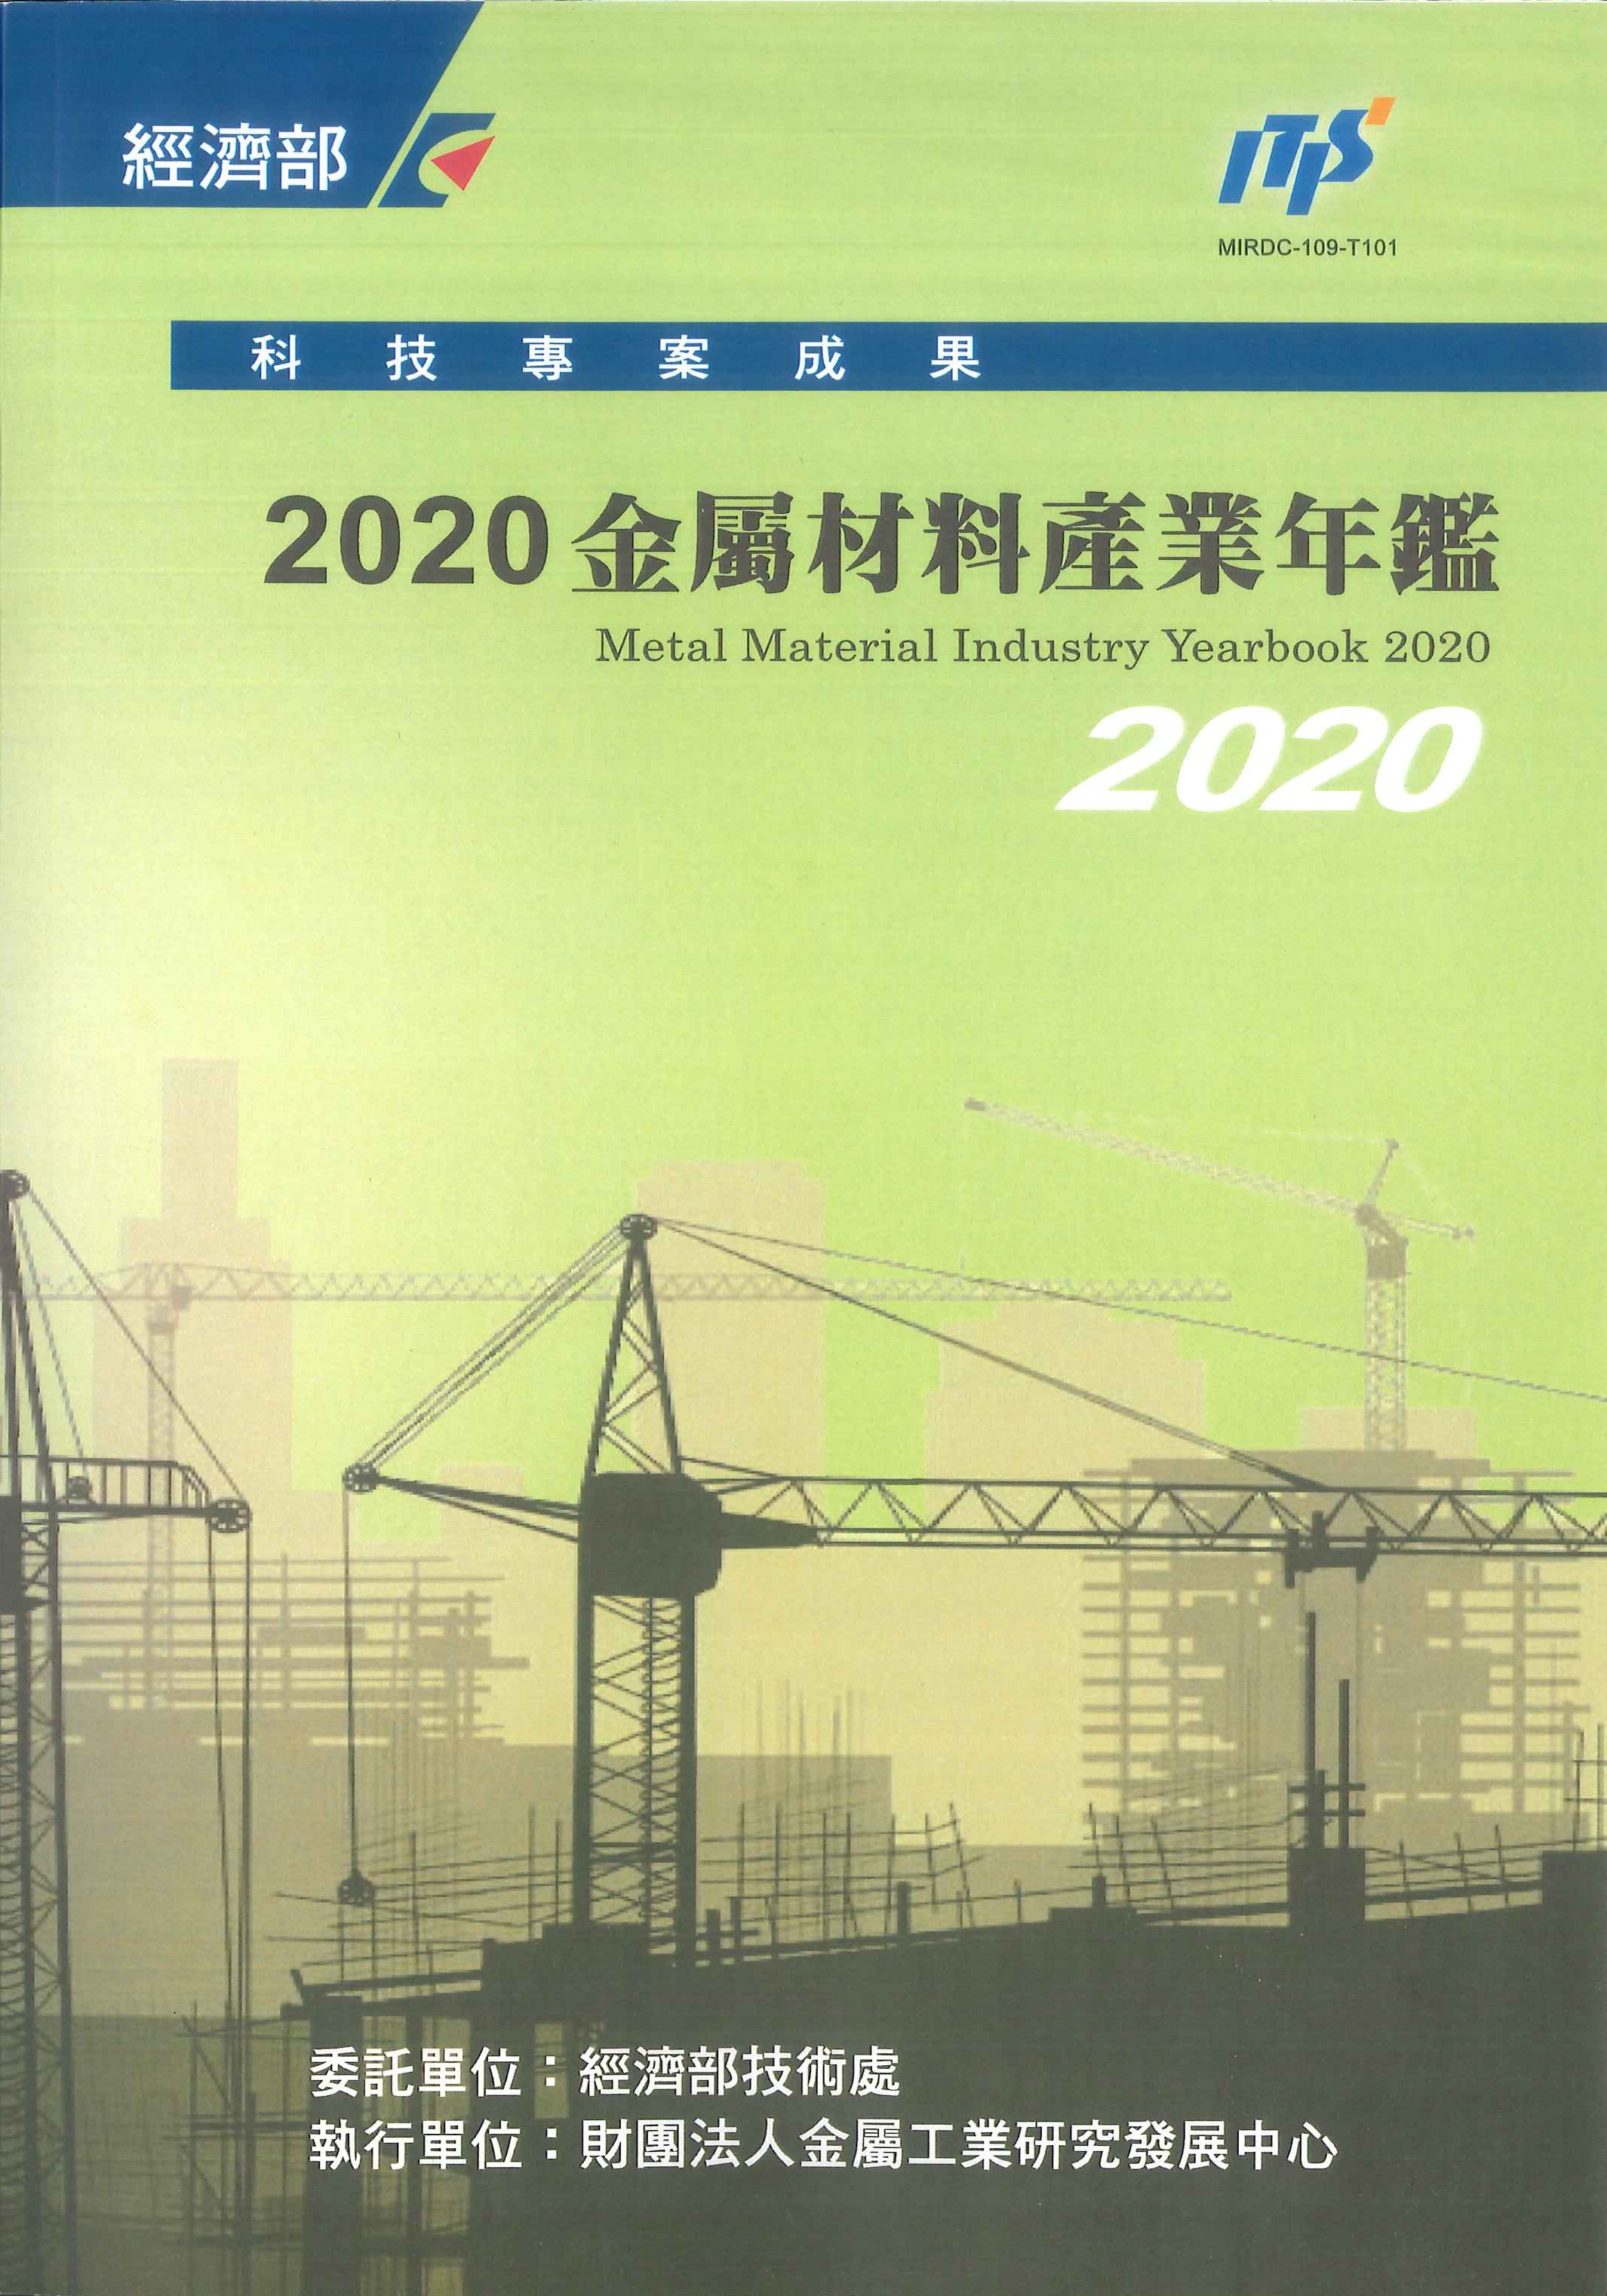 金屬材料產業年鑑=Metal material industry yearbook